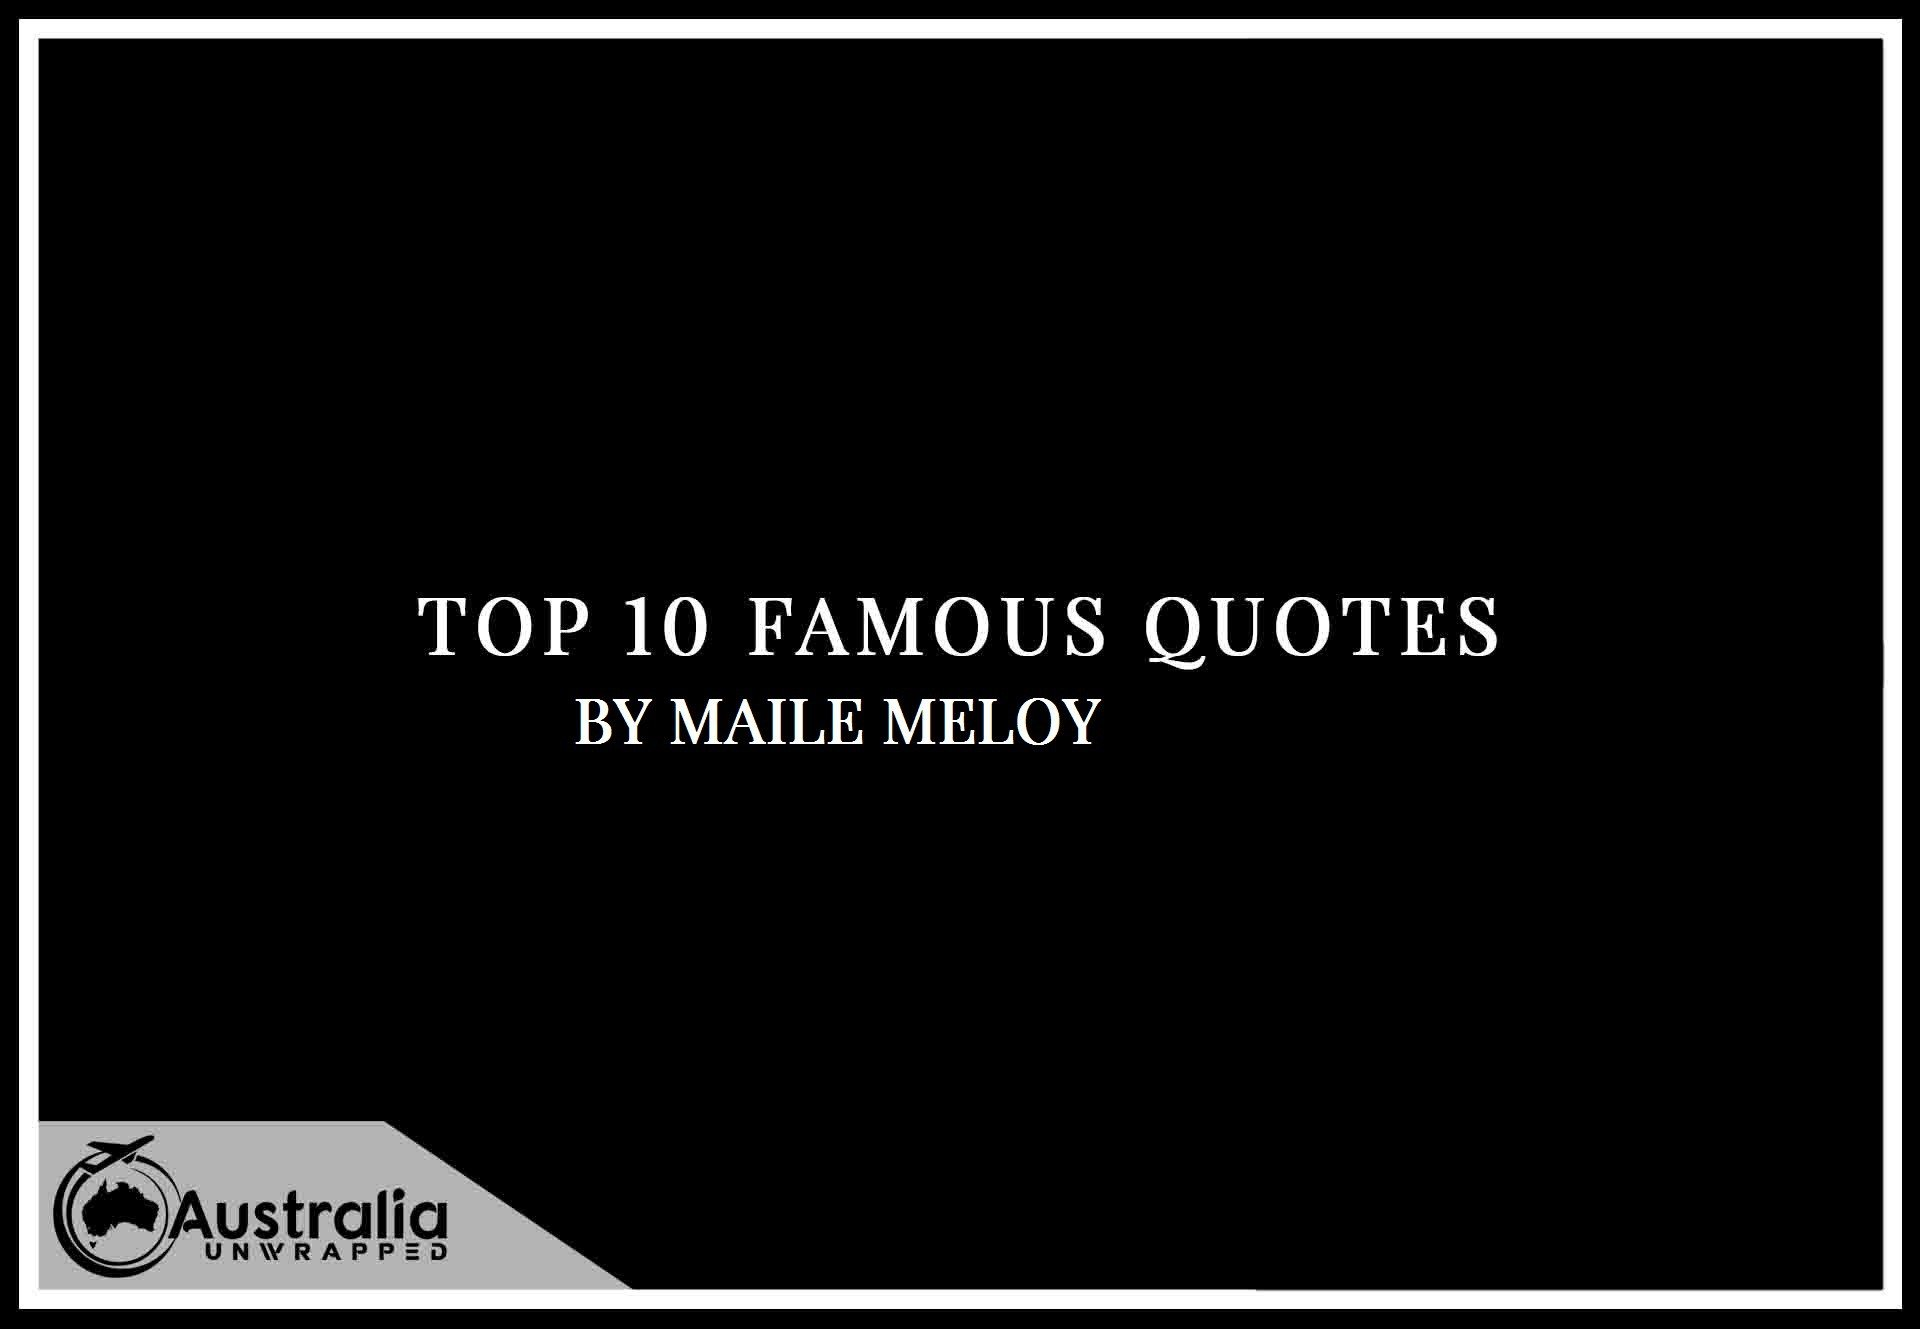 Maile Meloy's Top 10 Popular and Famous Quotes